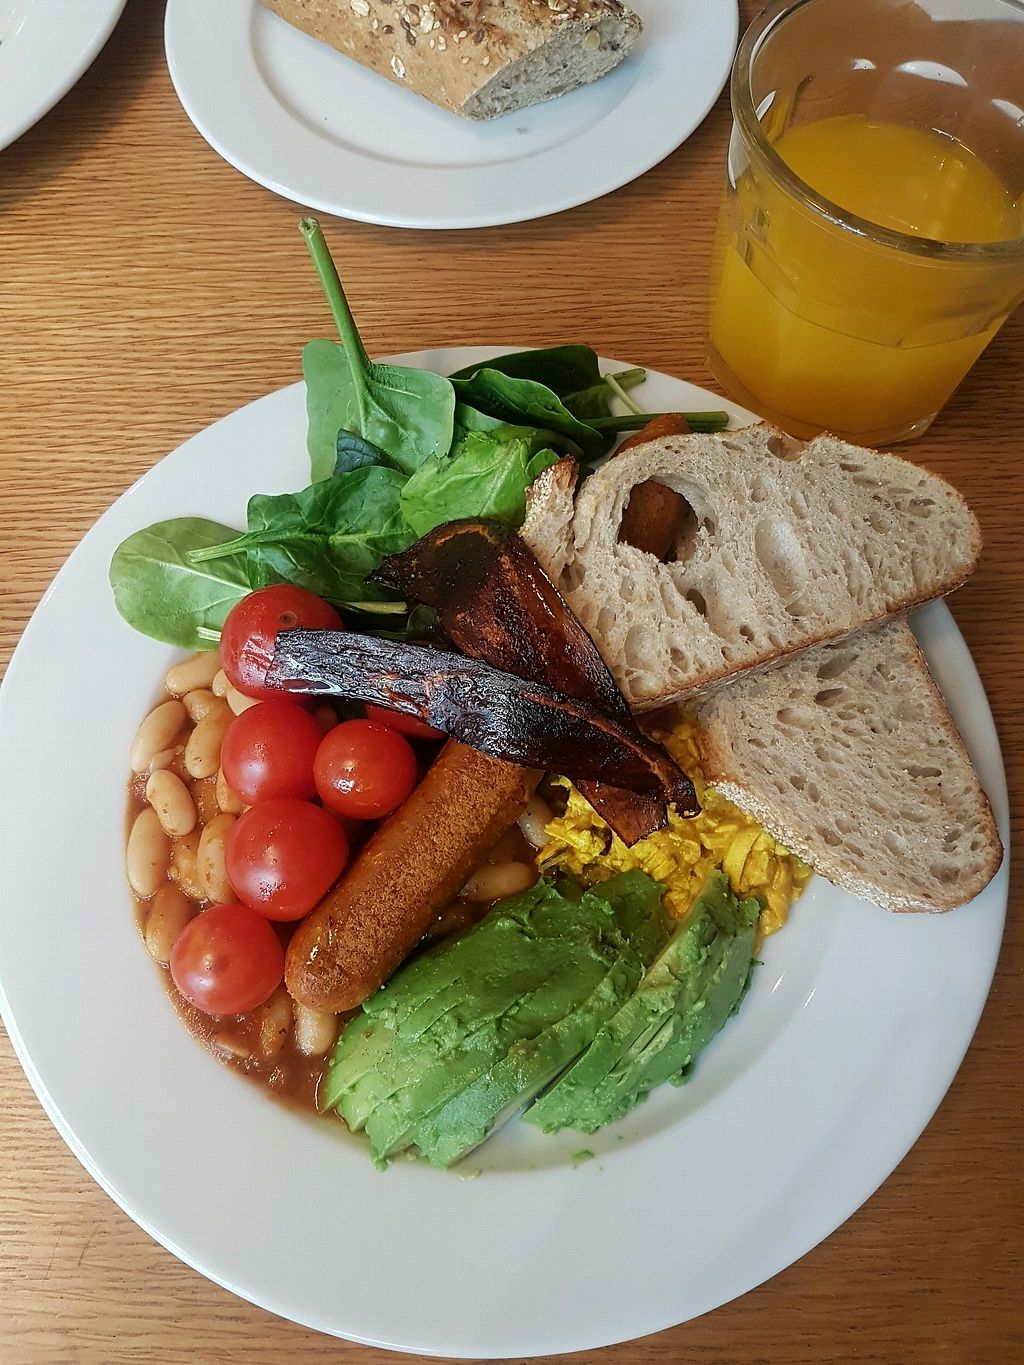 """Photo of Fruccola  by <a href=""""/members/profile/Woodkate"""">Woodkate</a> <br/>vegan breakfast @eatbynature <br/> April 17, 2018  - <a href='/contact/abuse/image/37276/387086'>Report</a>"""